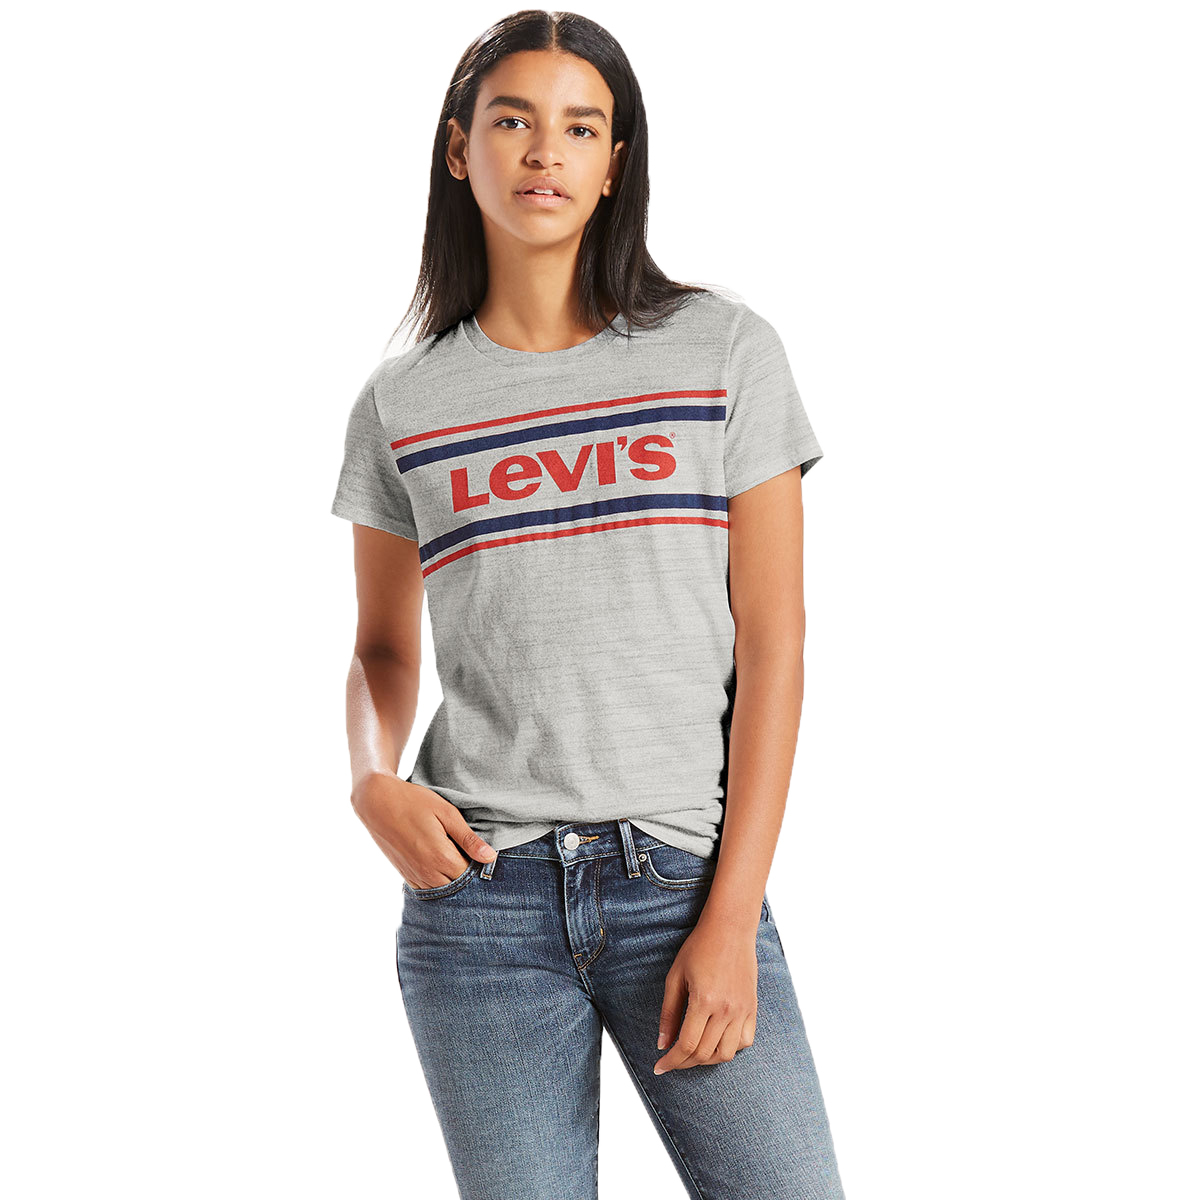 Levi's Women's Perfect Graphic Tee - Black, M